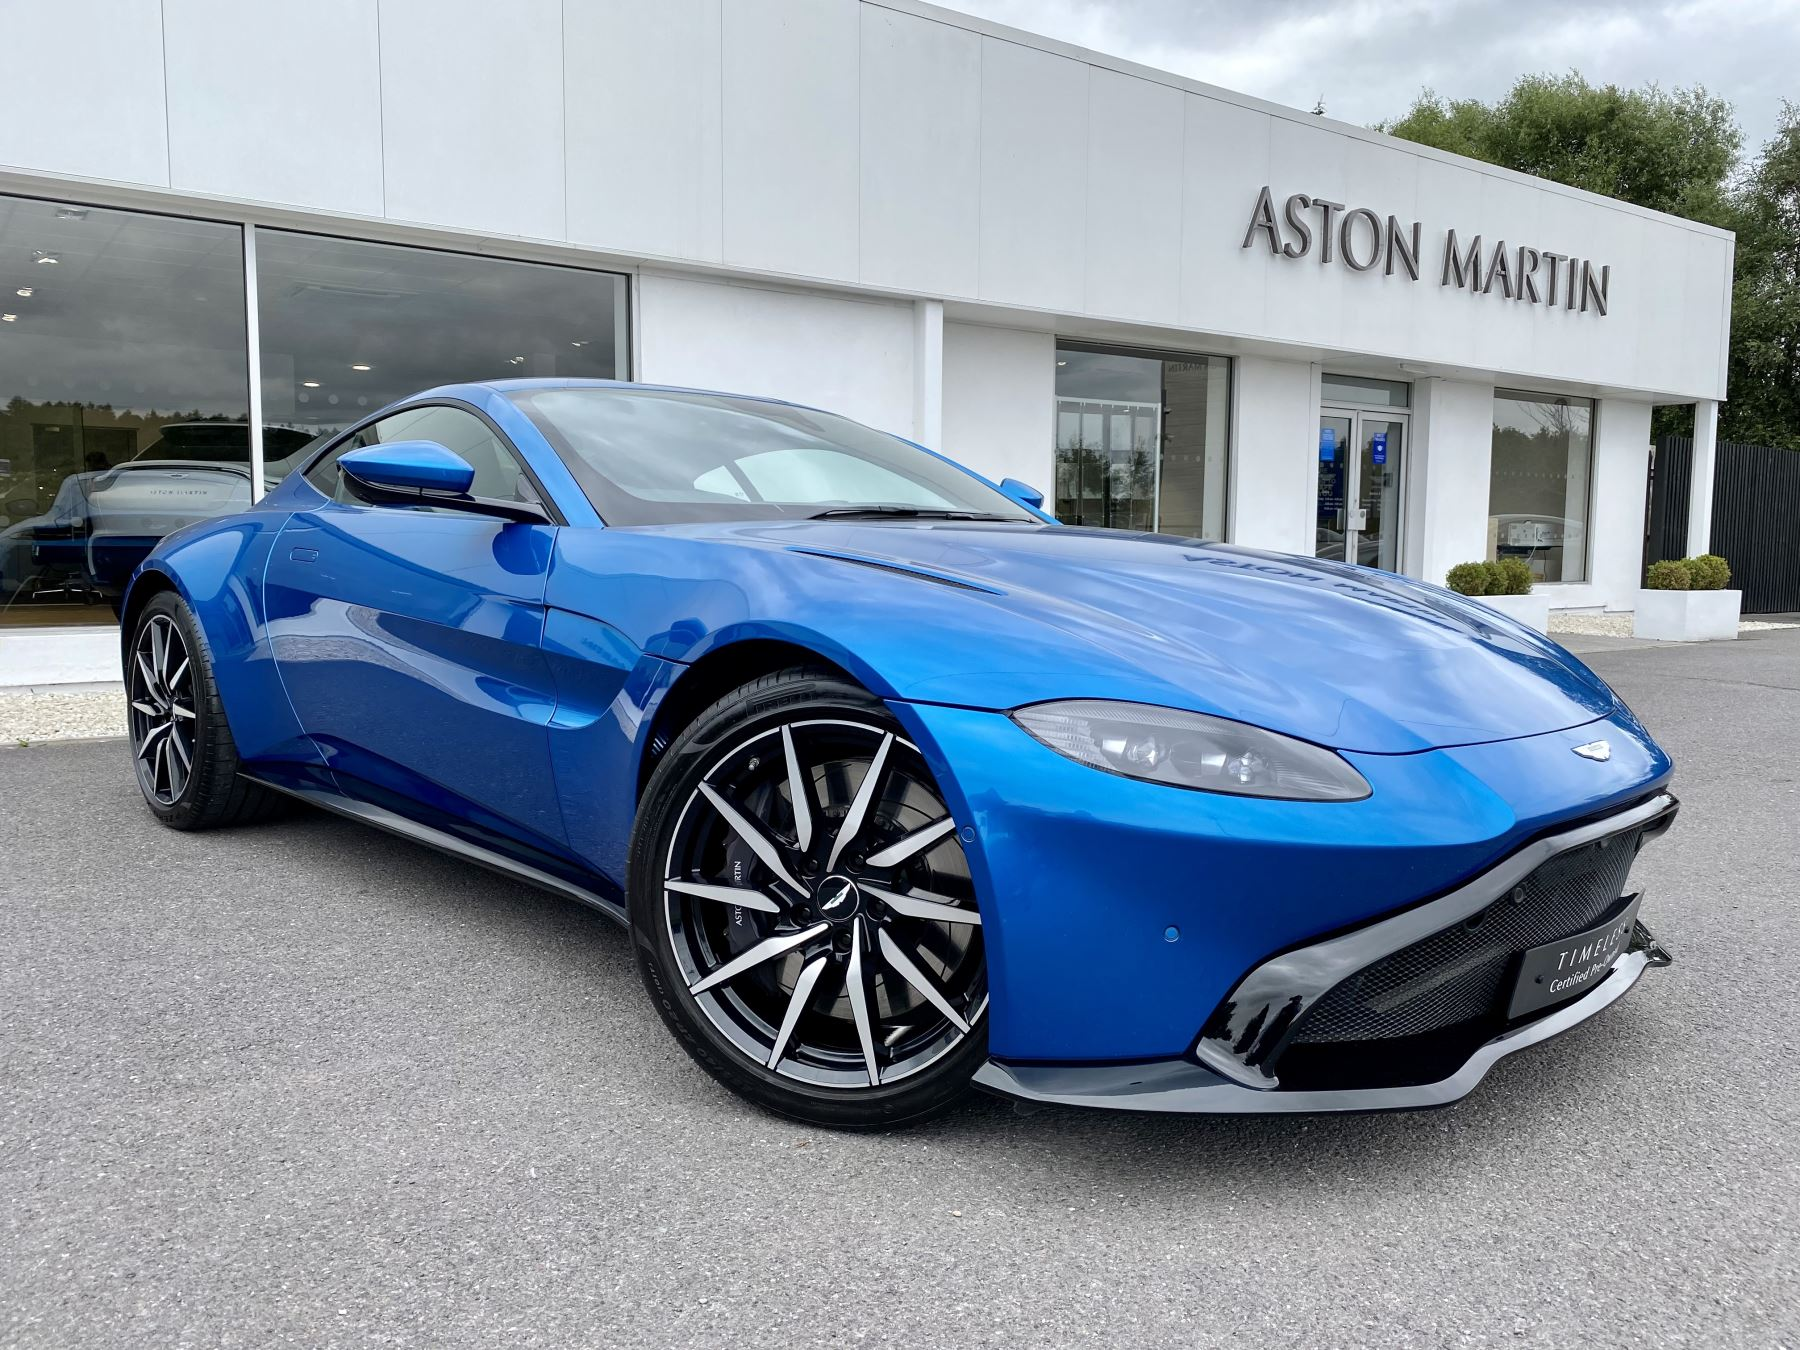 Aston Martin New Vantage 2dr ZF 8 Speed Auto. 4.0 Twin Turbo ZF Gearbox  Reversing Camera Heated Seats  Automatic 3 door Coupe